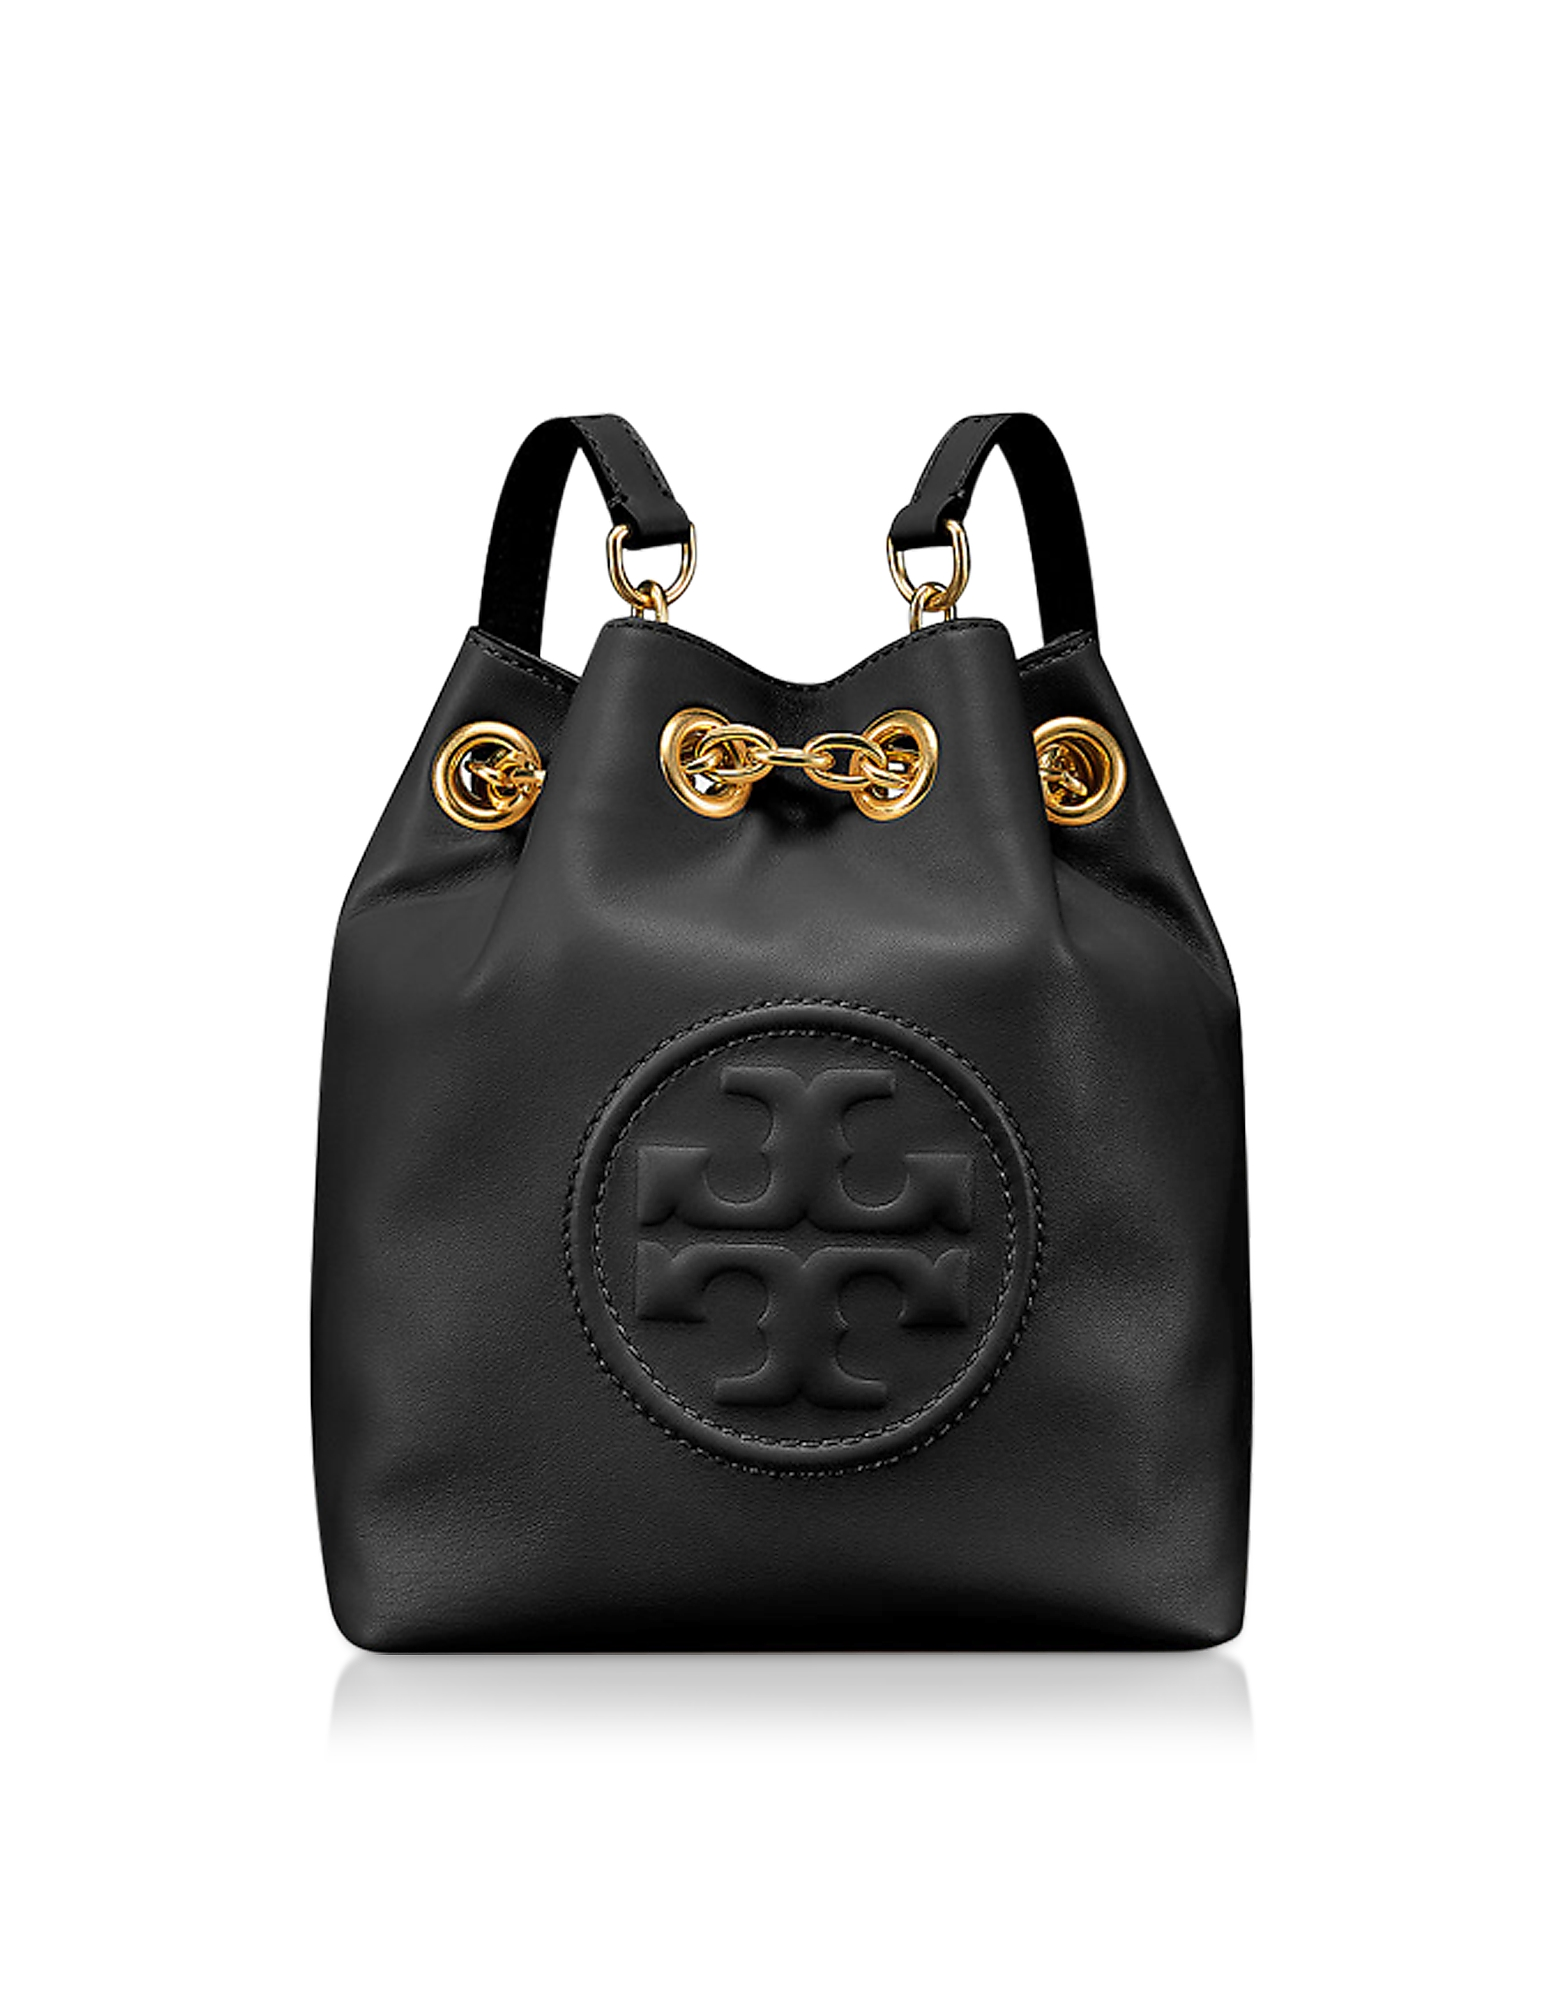 Tory Burch Handbags, Key Item Black Leather Mini Backpack